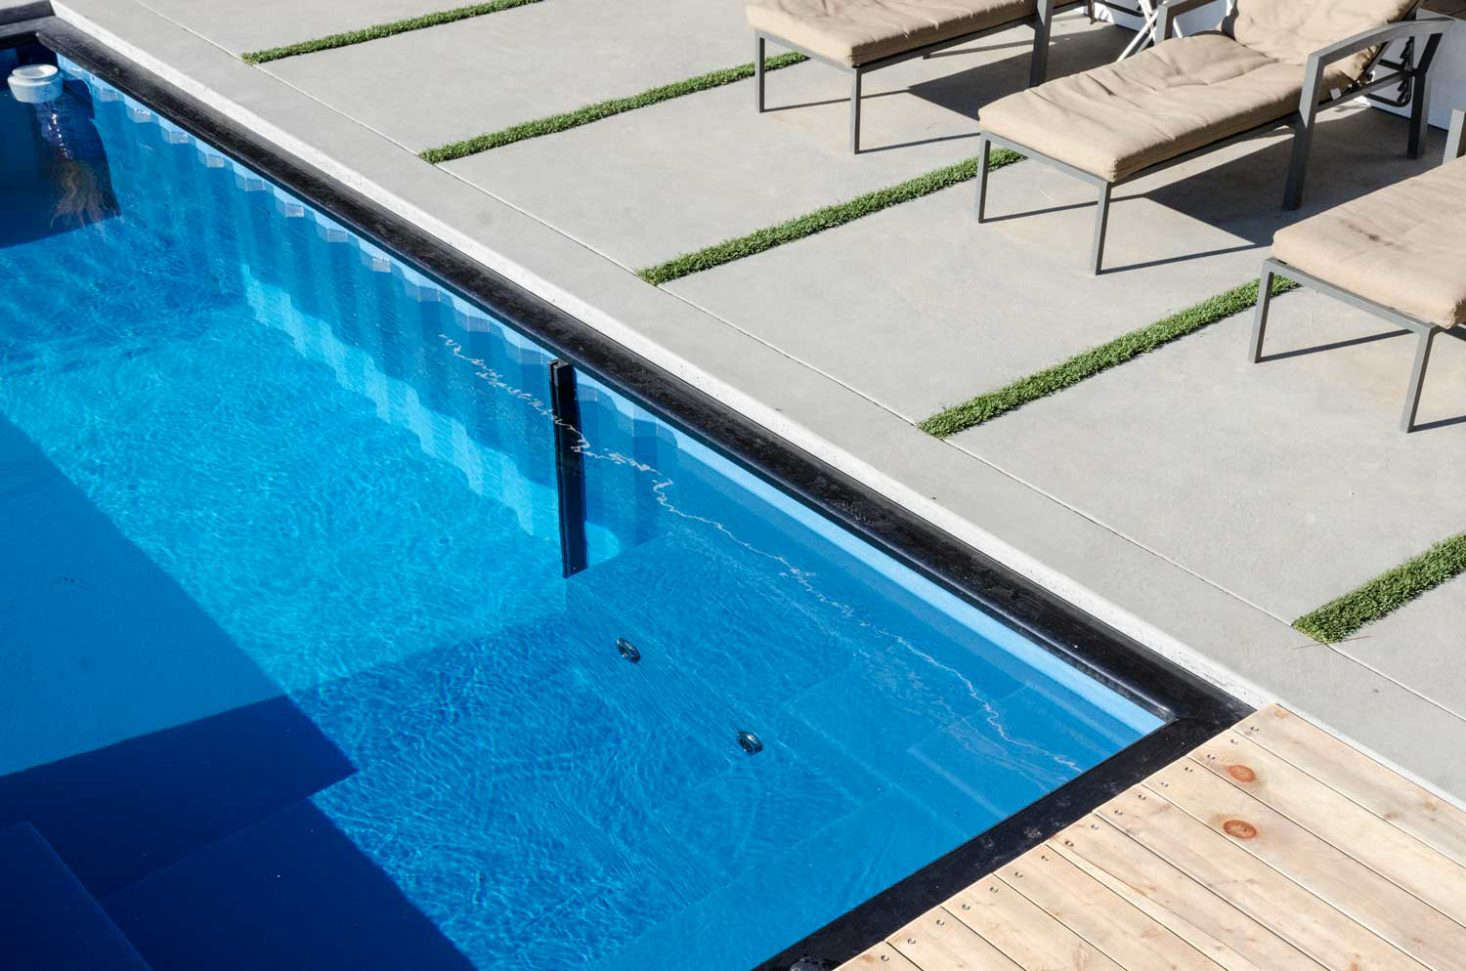 A clear polyethylene wall separates the swimming area from the hot tub portion—which has eight body jets and steps that double as seating.